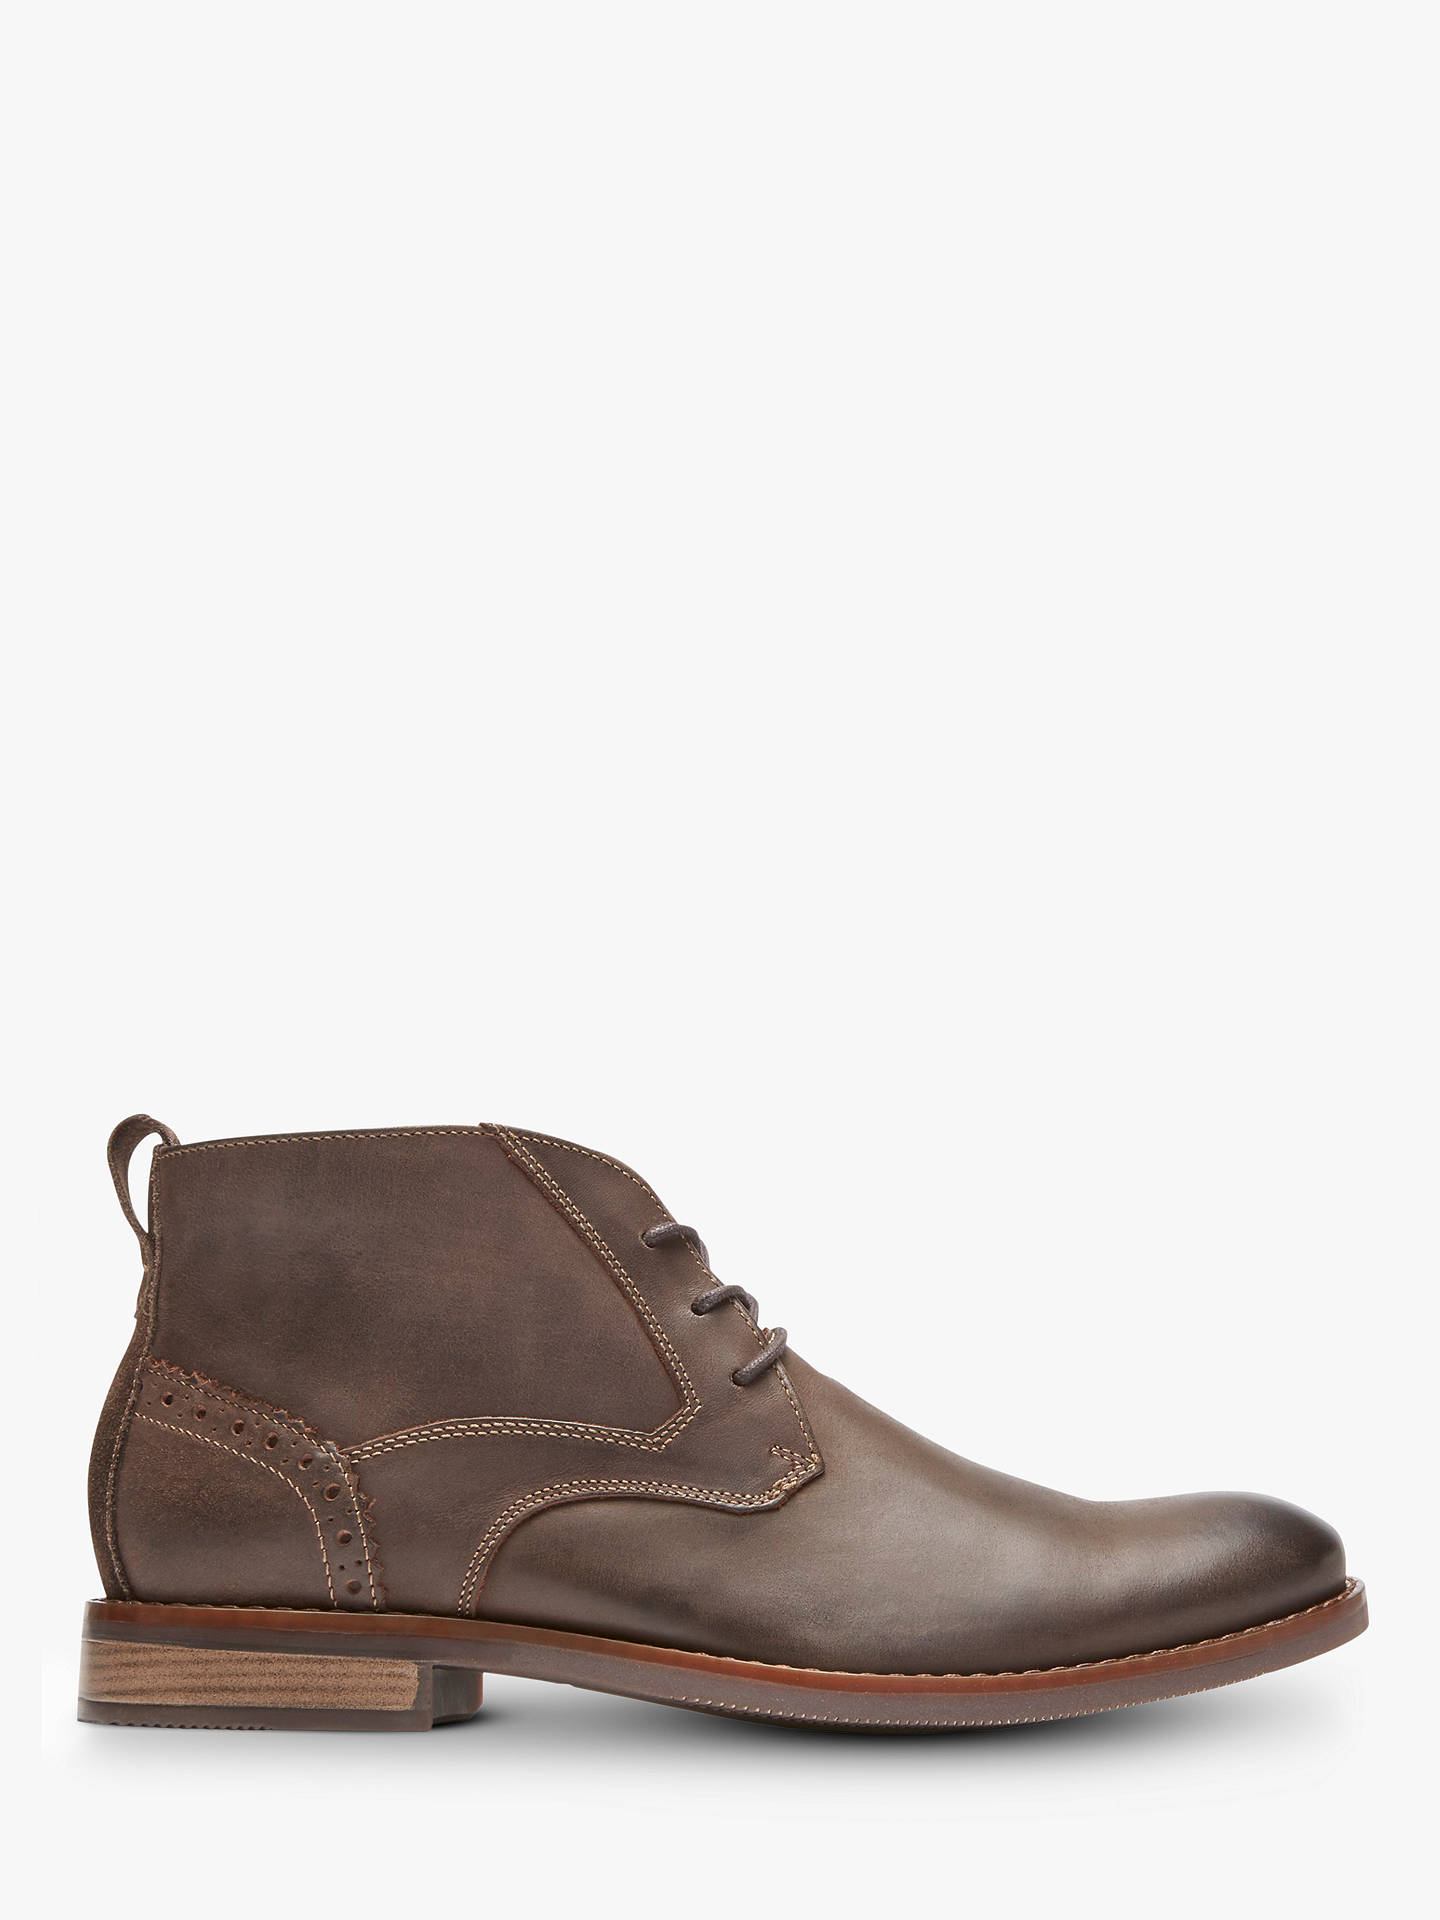 BuyRockport Wynstyn Chukka Boots, Brown, 7 Online at johnlewis.com